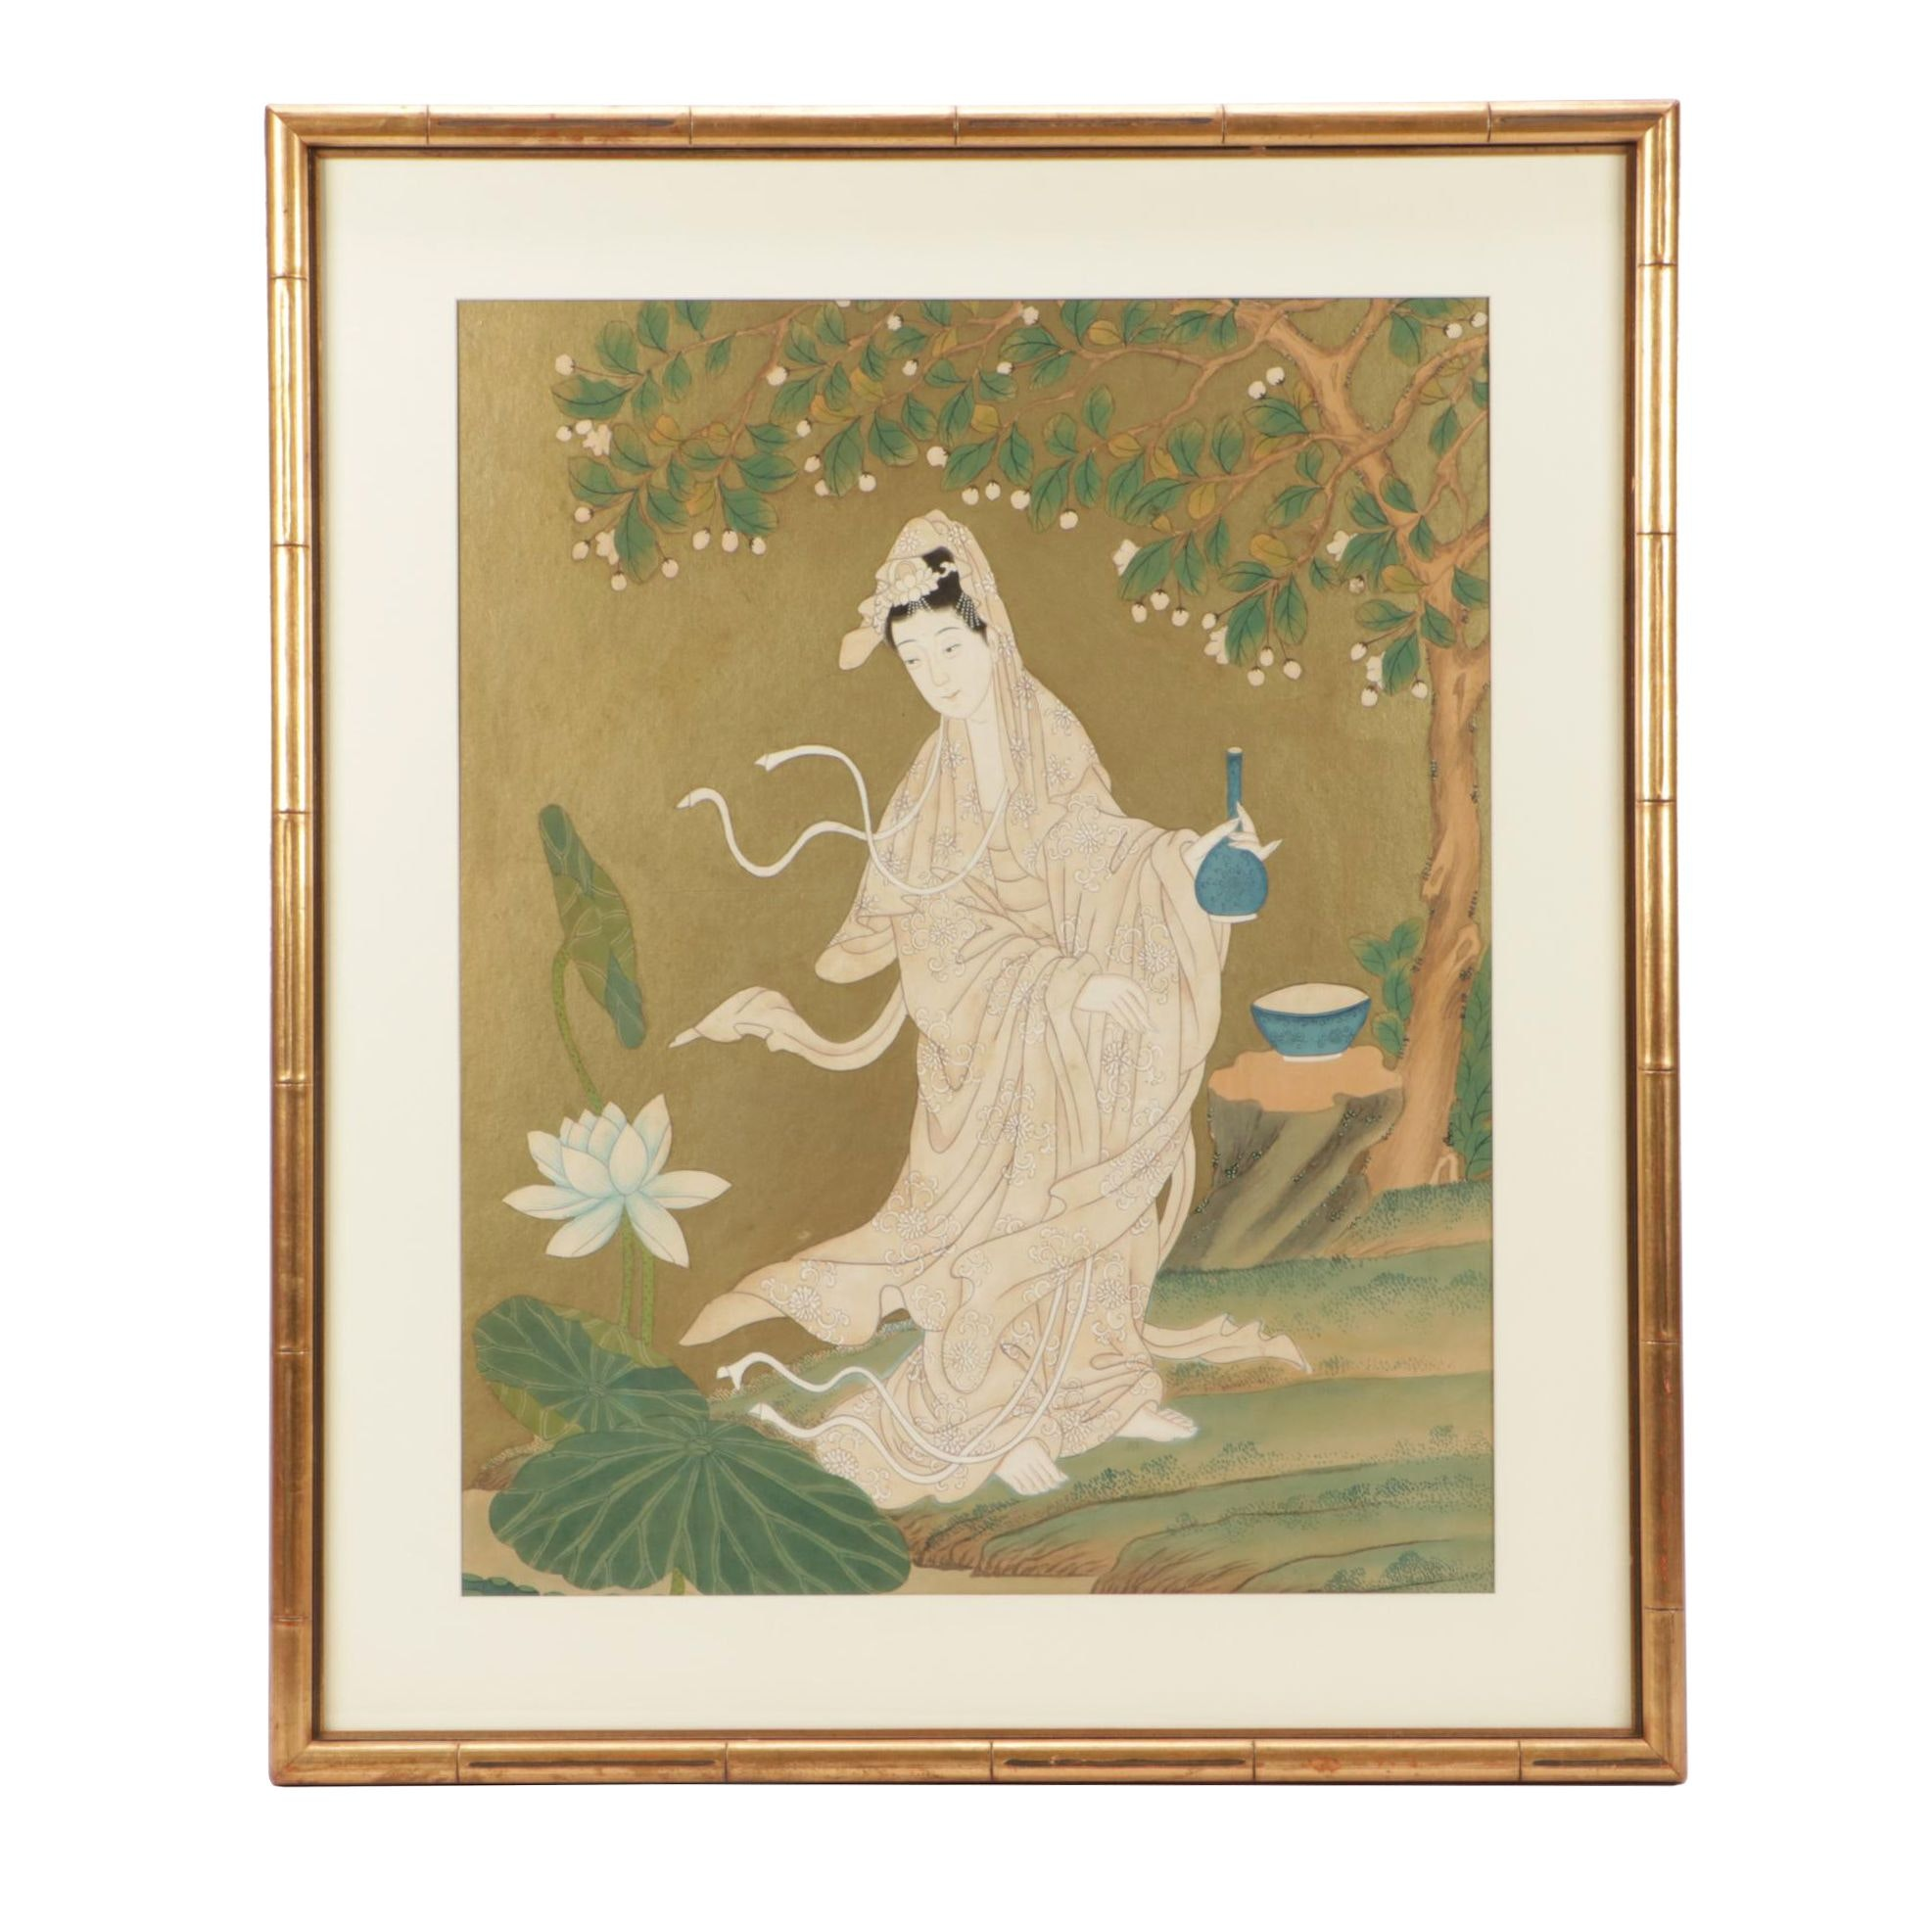 Chinese Ink and Watercolor Painting of Woman in Garden